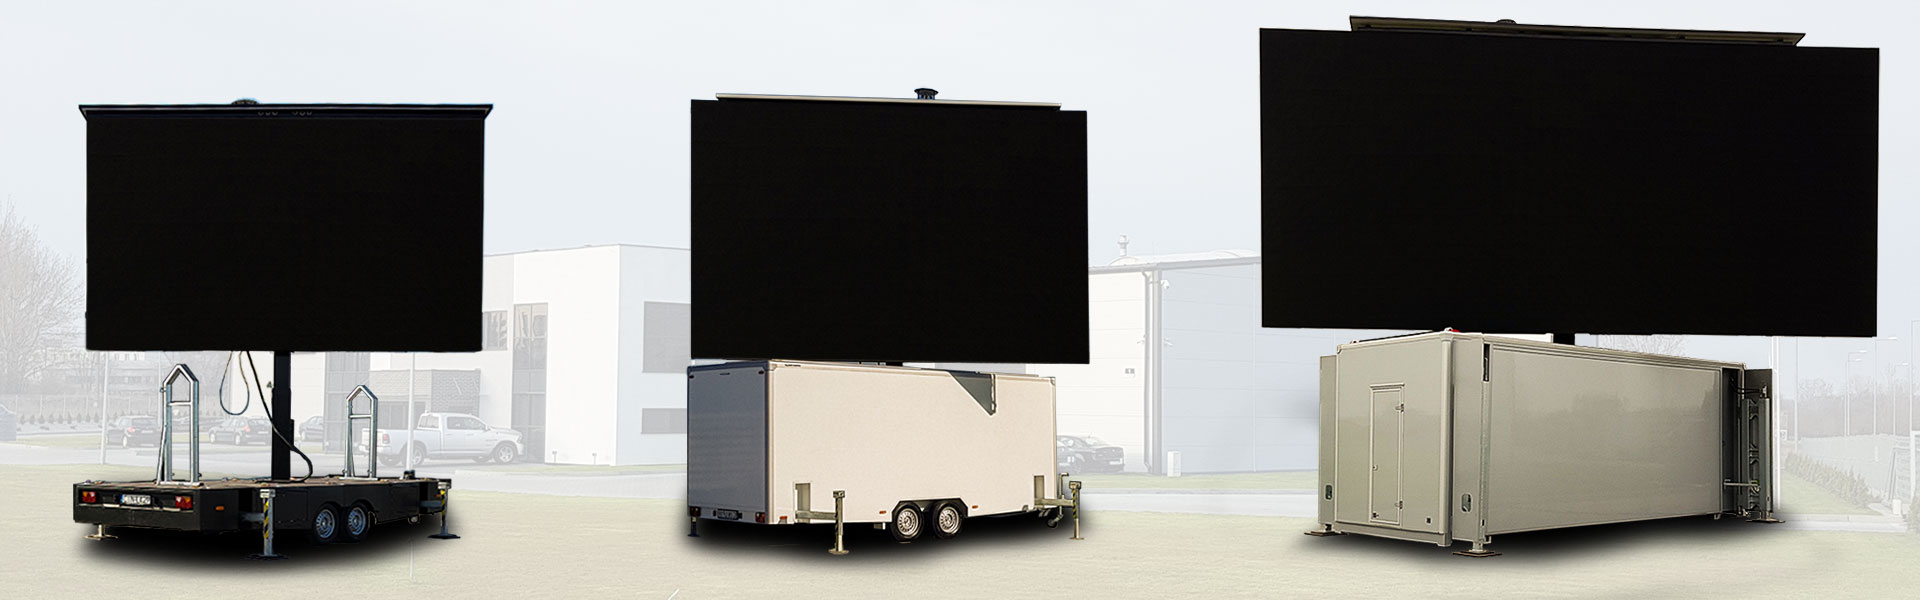 Mobile LED screens what we are selling